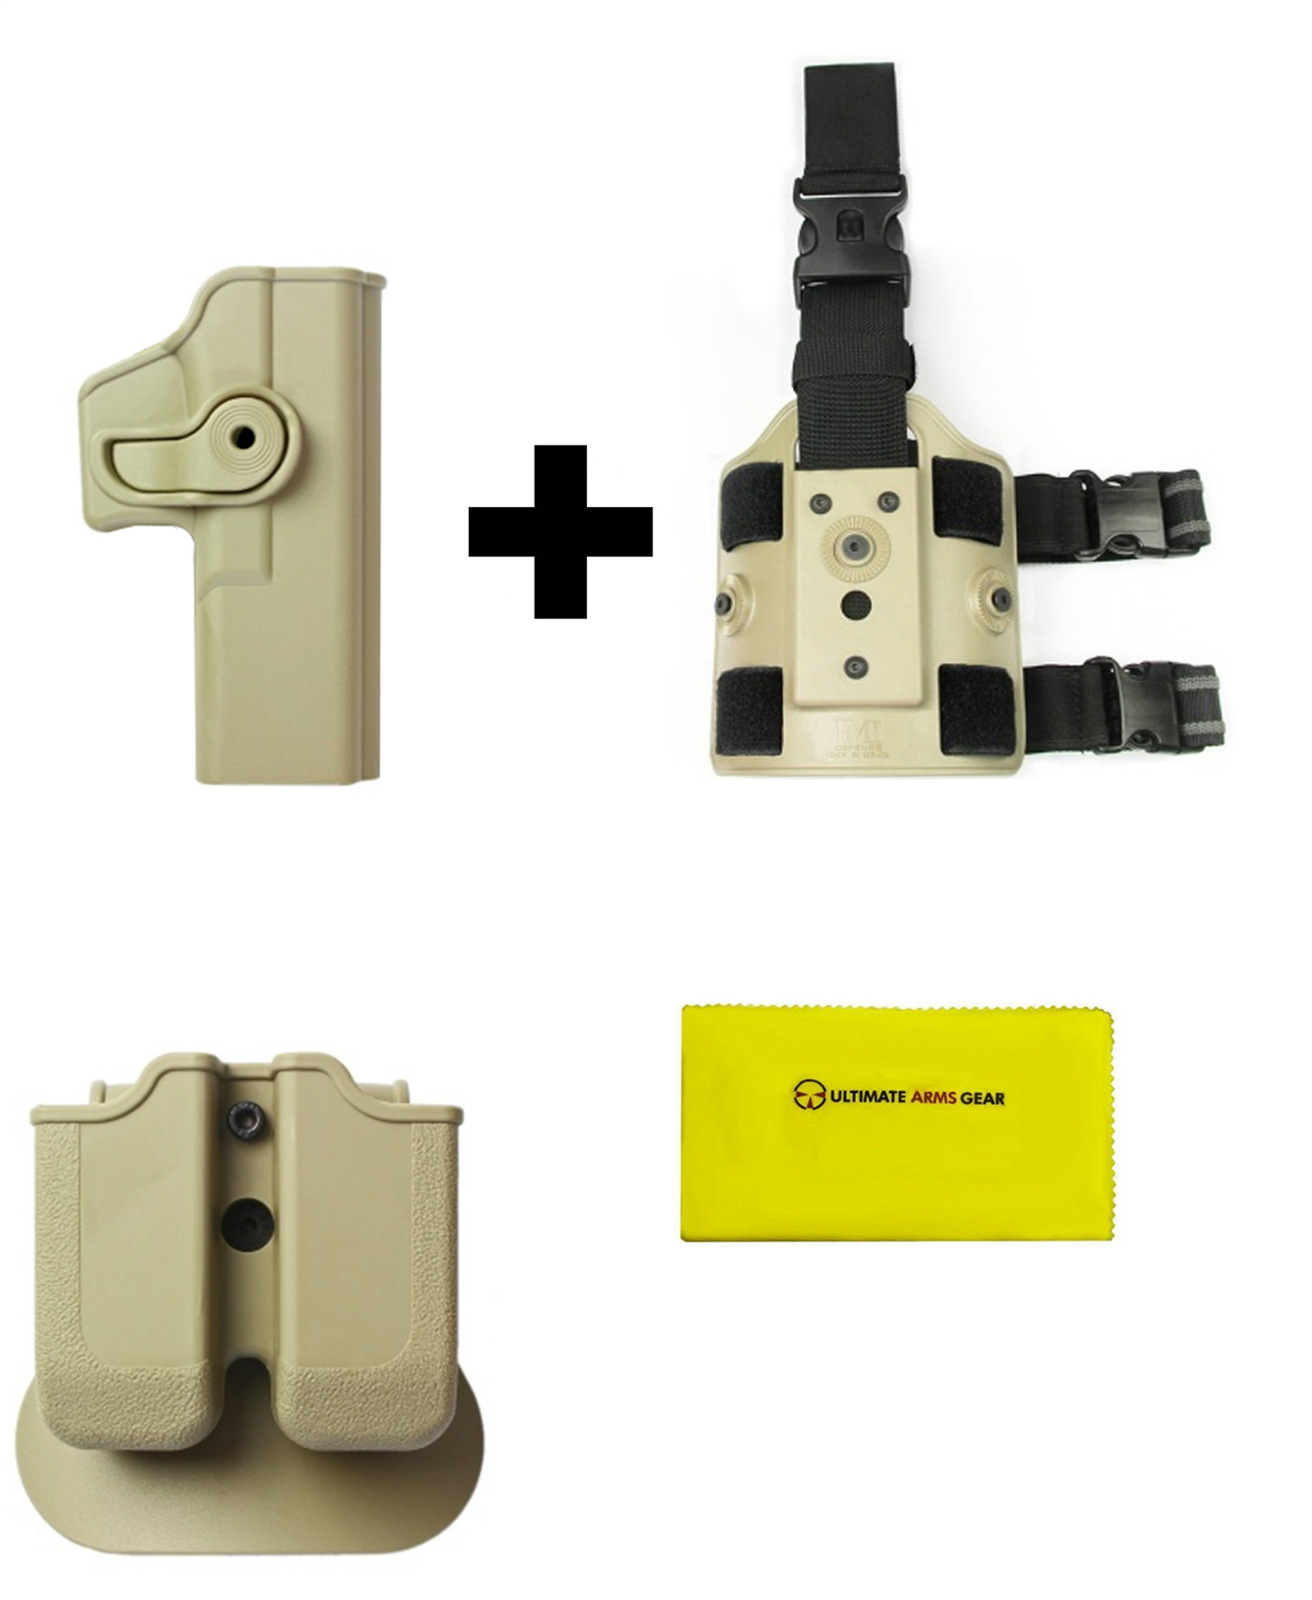 IMI Defense Z2000 MP00 Double Mag Holder & Paddle + Z1010 Rotate Holster Glock 17 22 28 31 34 Right Handed Gen 4... by